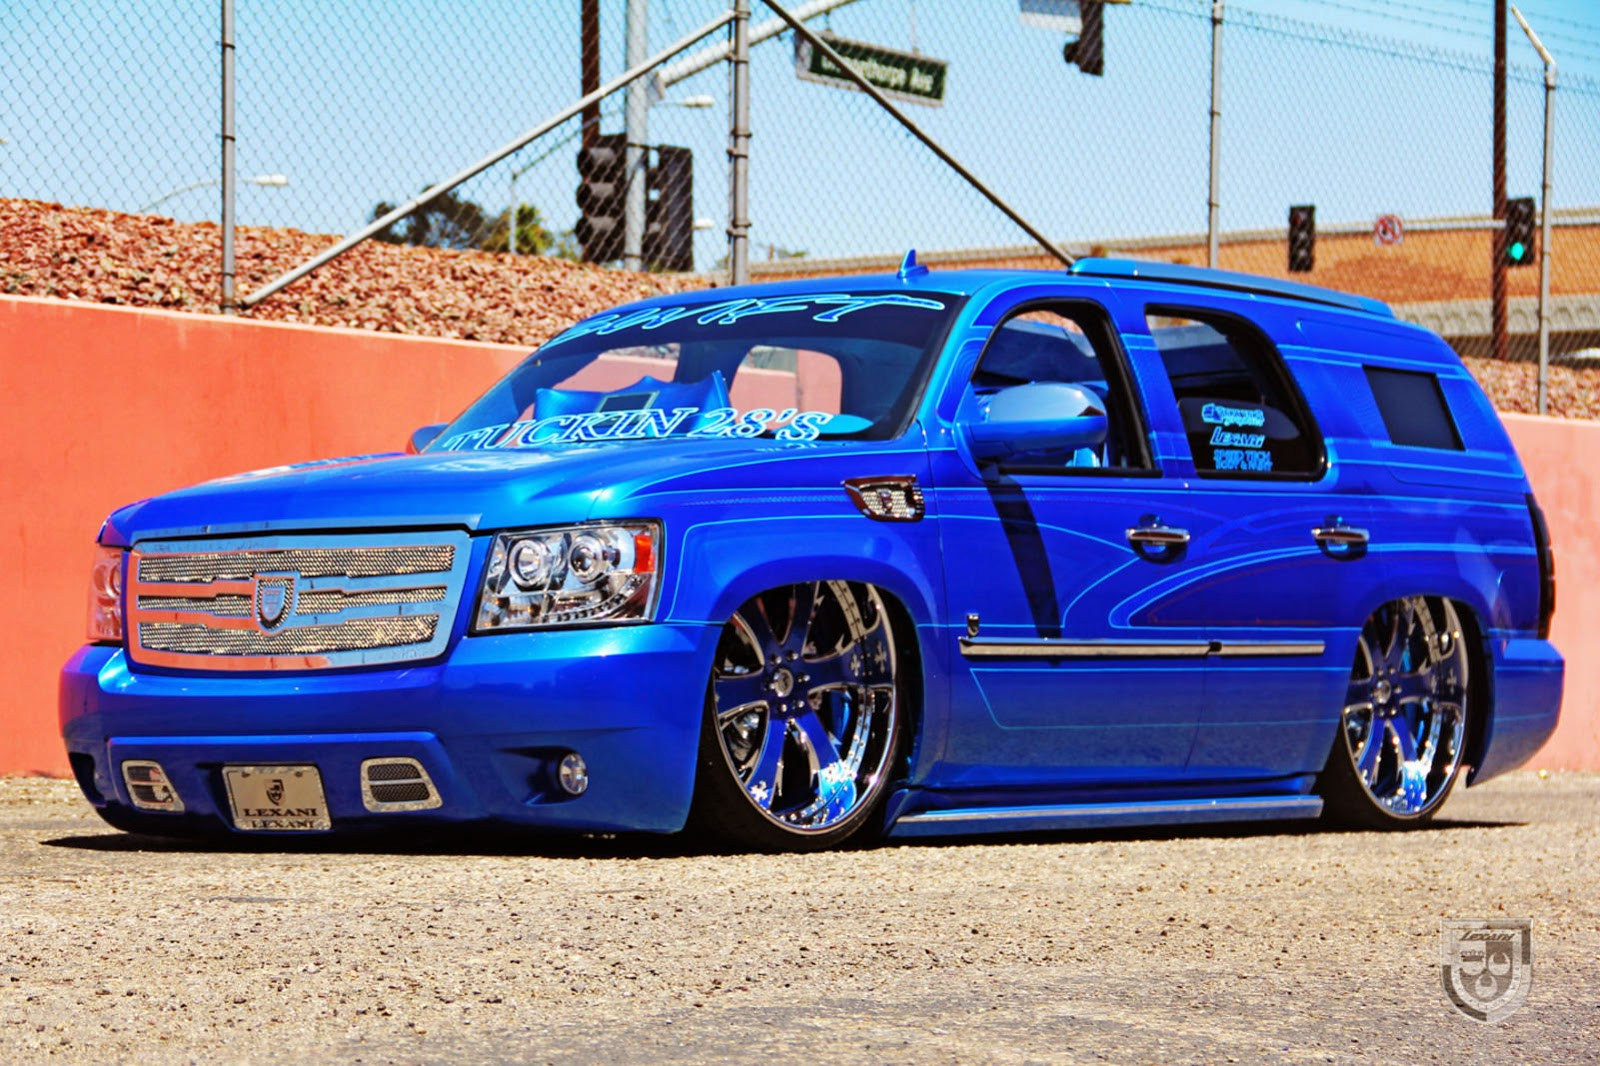 Blue Chevy Tahoe with Rims